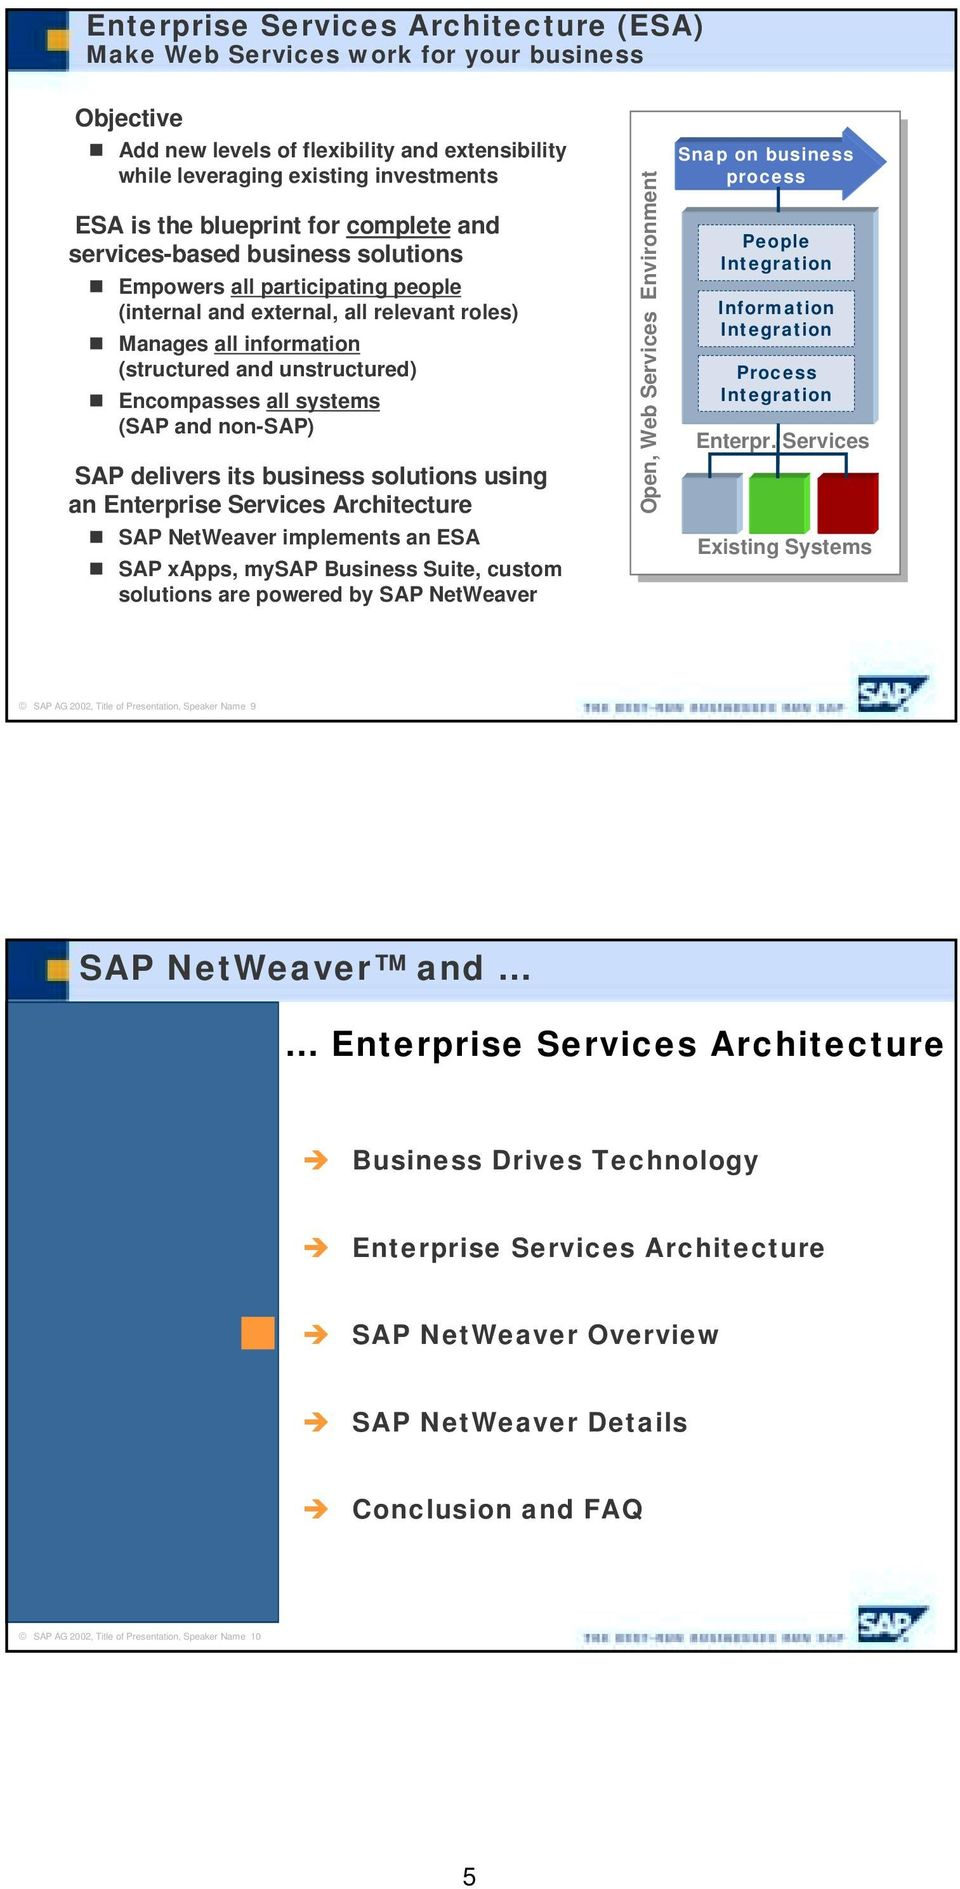 Encompasses all systems (SAP and non-sap) SAP delivers its business solutions using an Enterprise Services Architecture # SAP NetWeaver implements an ESA # SAP xapps, mysap Business Suite, custom